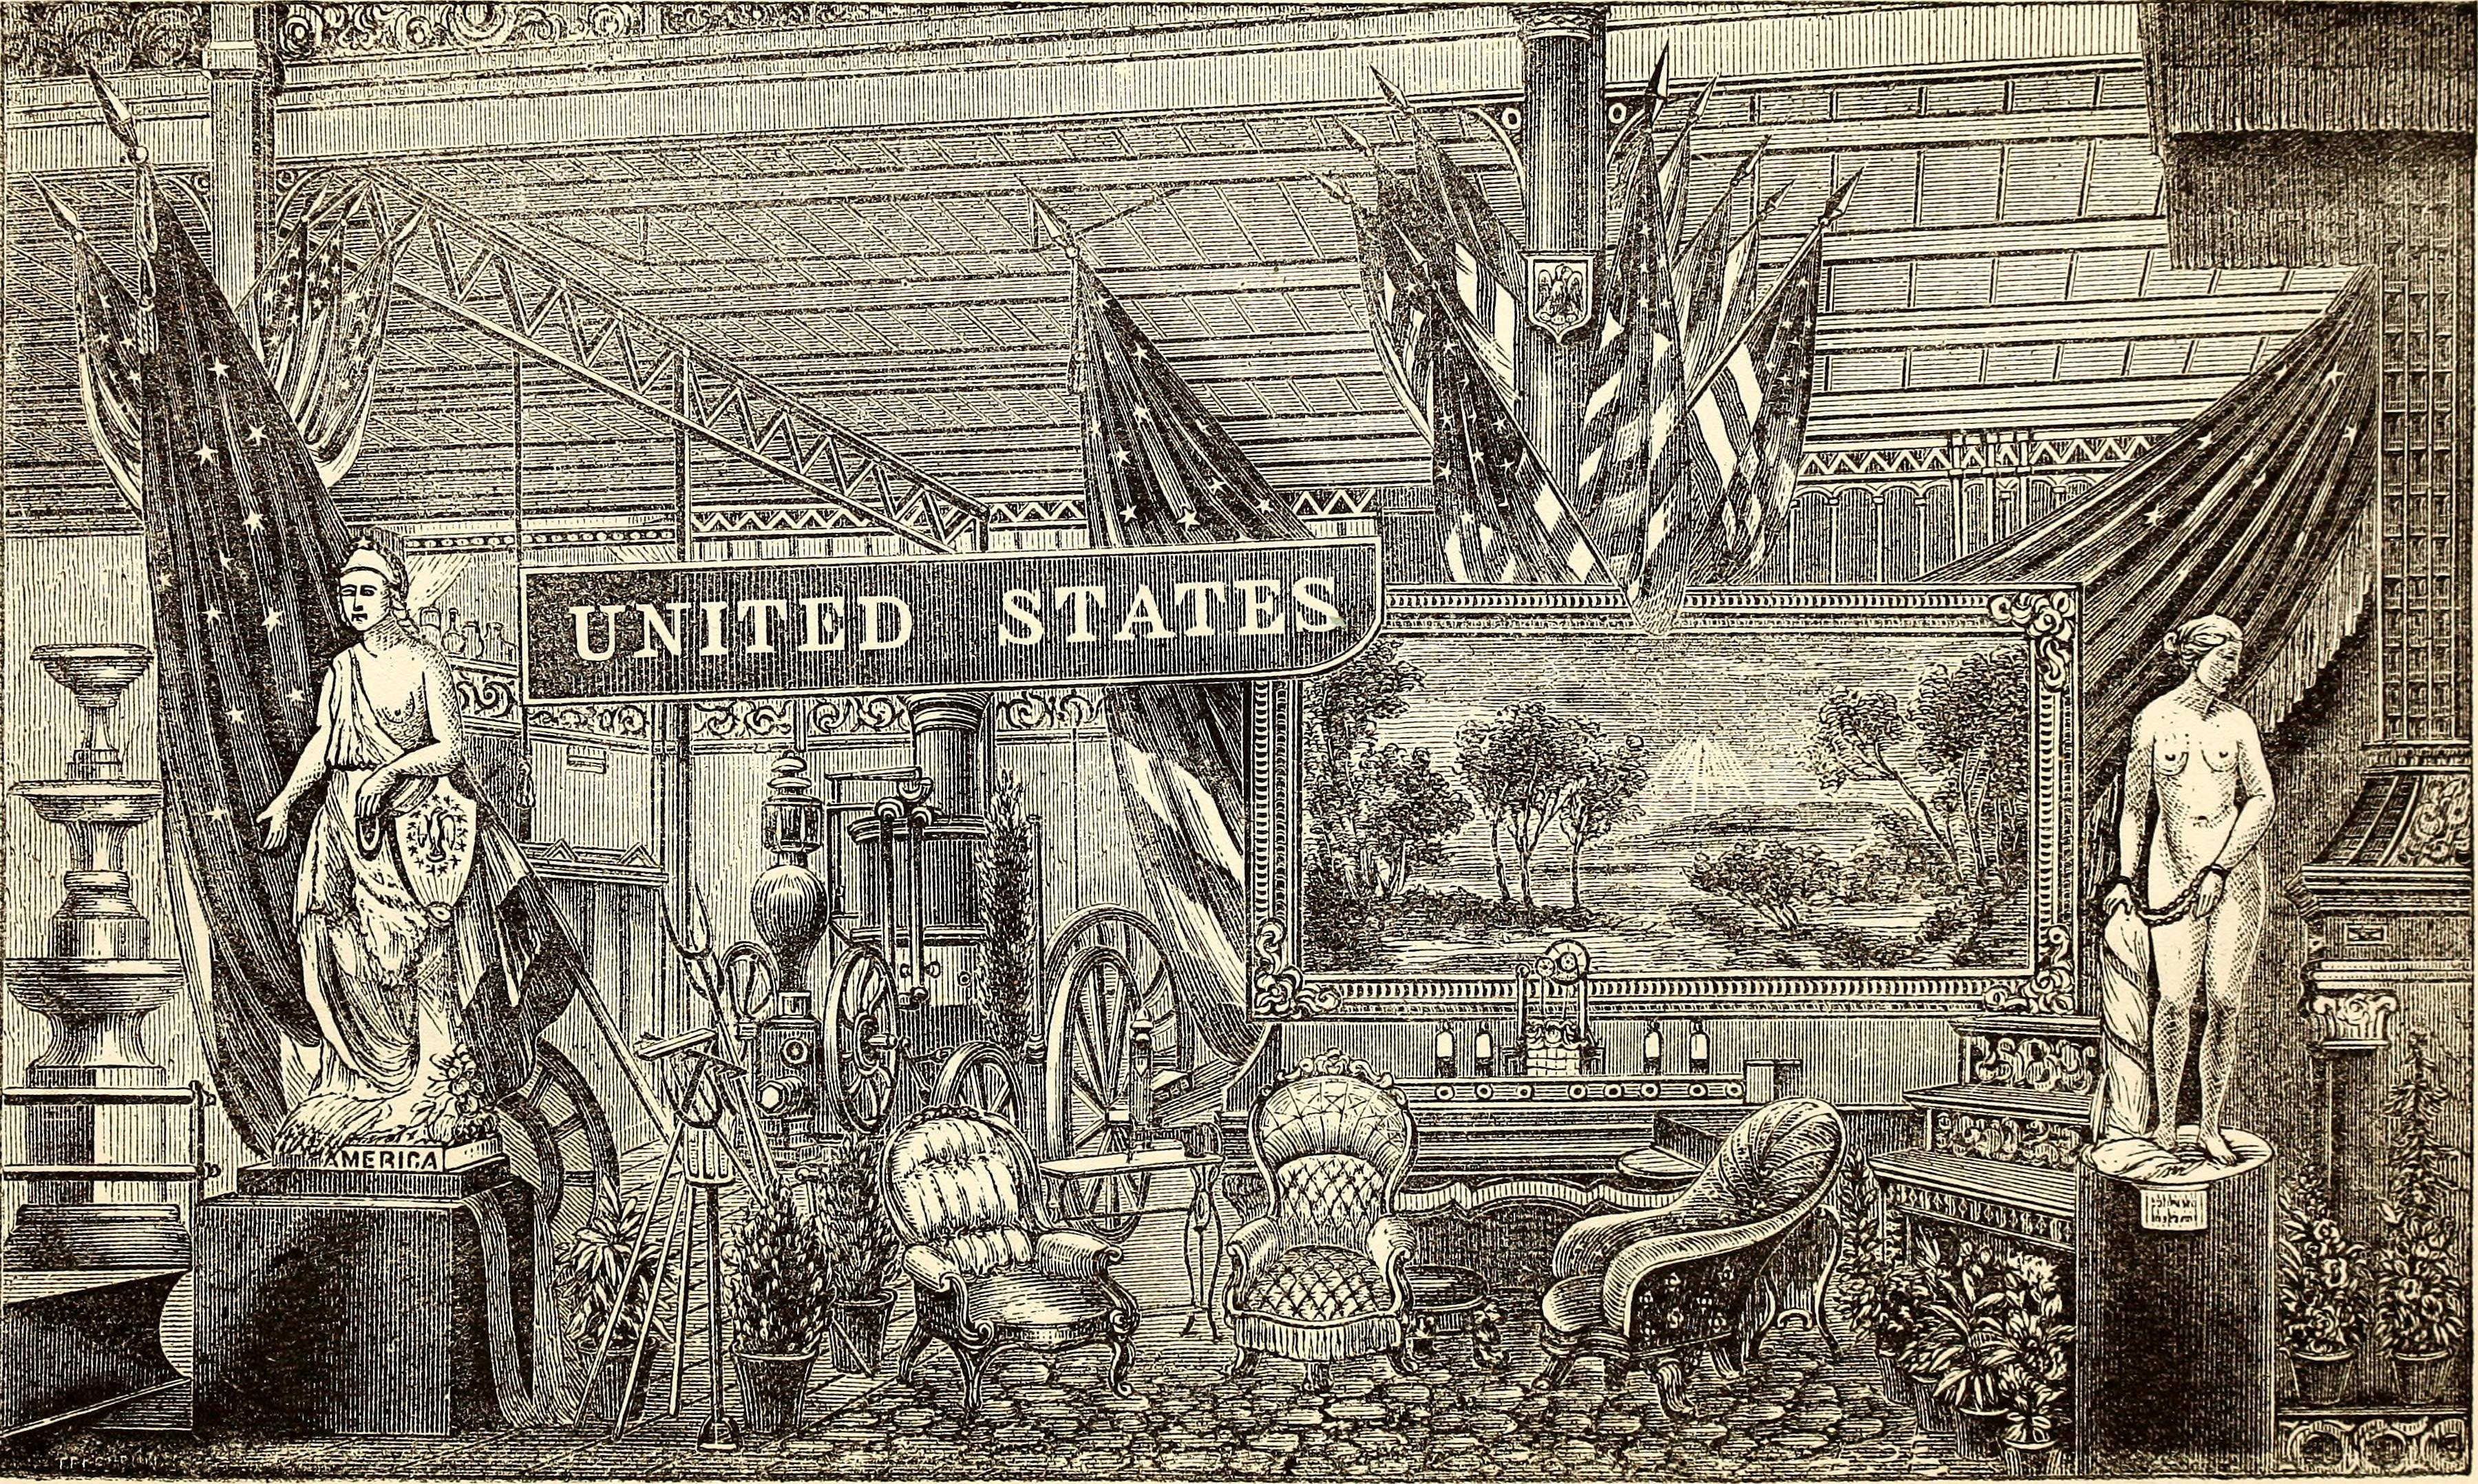 an introduction to the power of the presidency of the united states Andrew jackson was the seventh president of the united states, but he was the first in many other ways  introduction  born in poverty, andrew jackson (1767-1845) had become a wealthy .